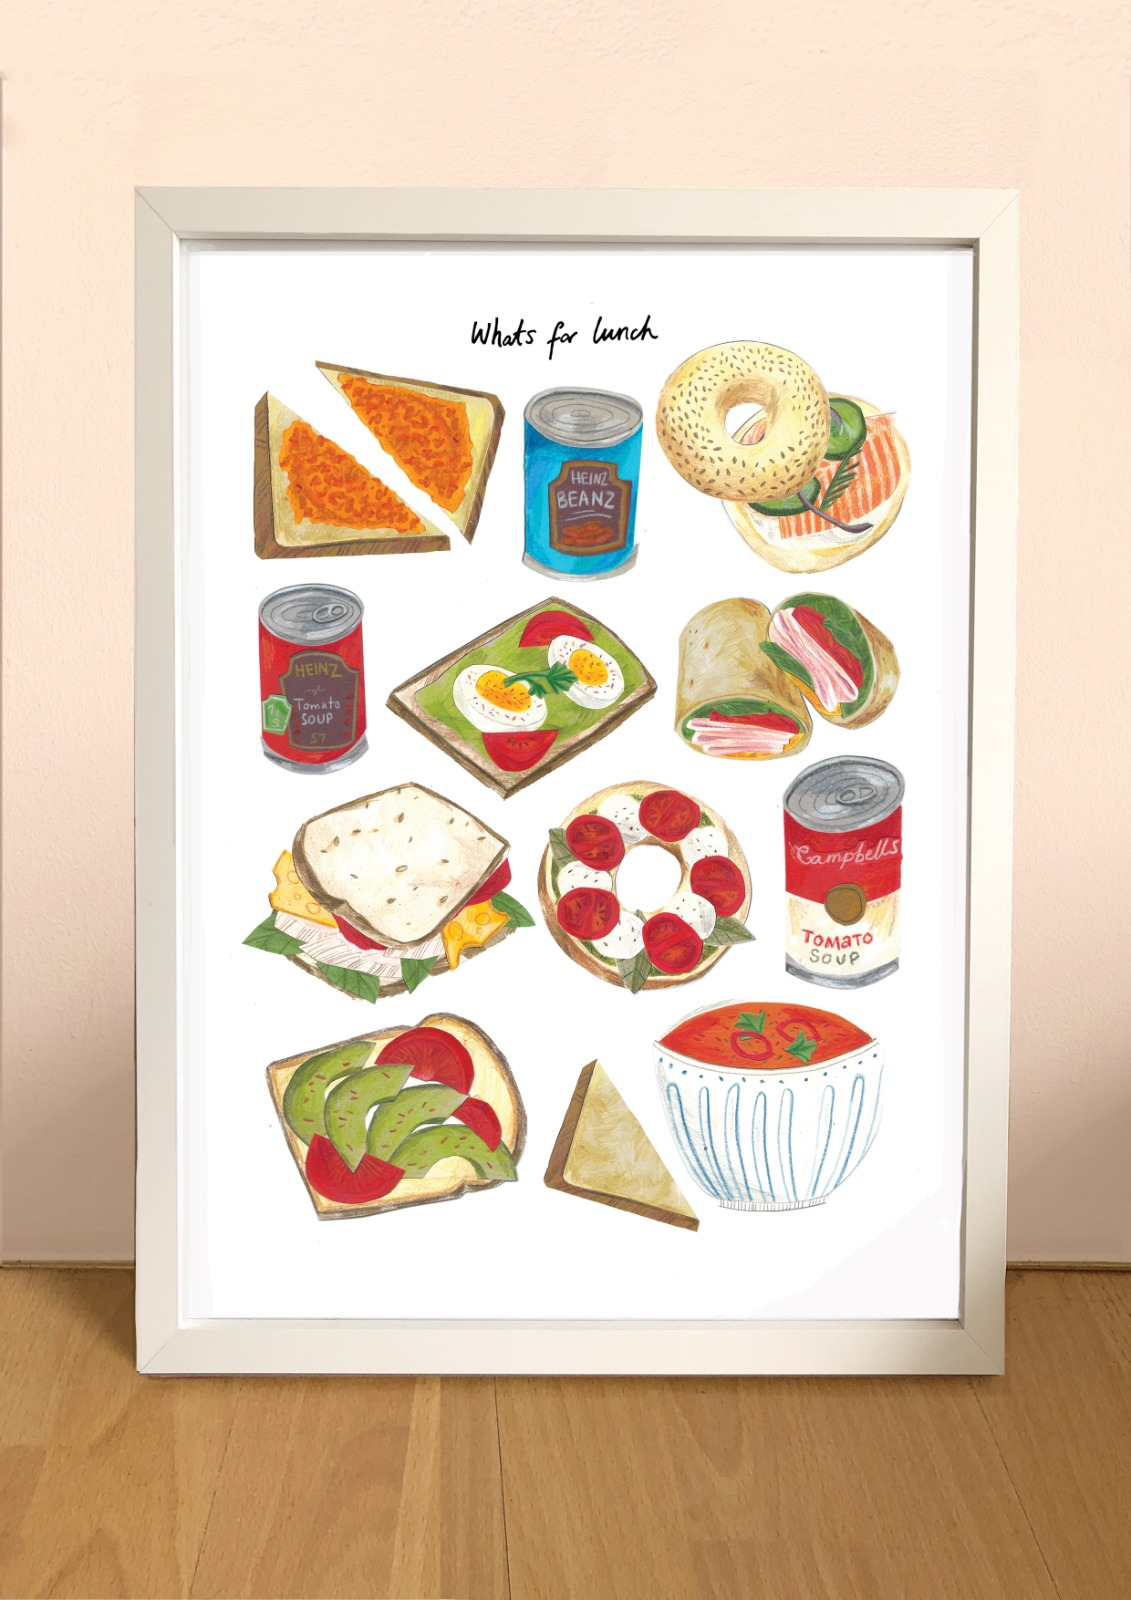 Kaitlin Mechan A4 What's for Lunch Print